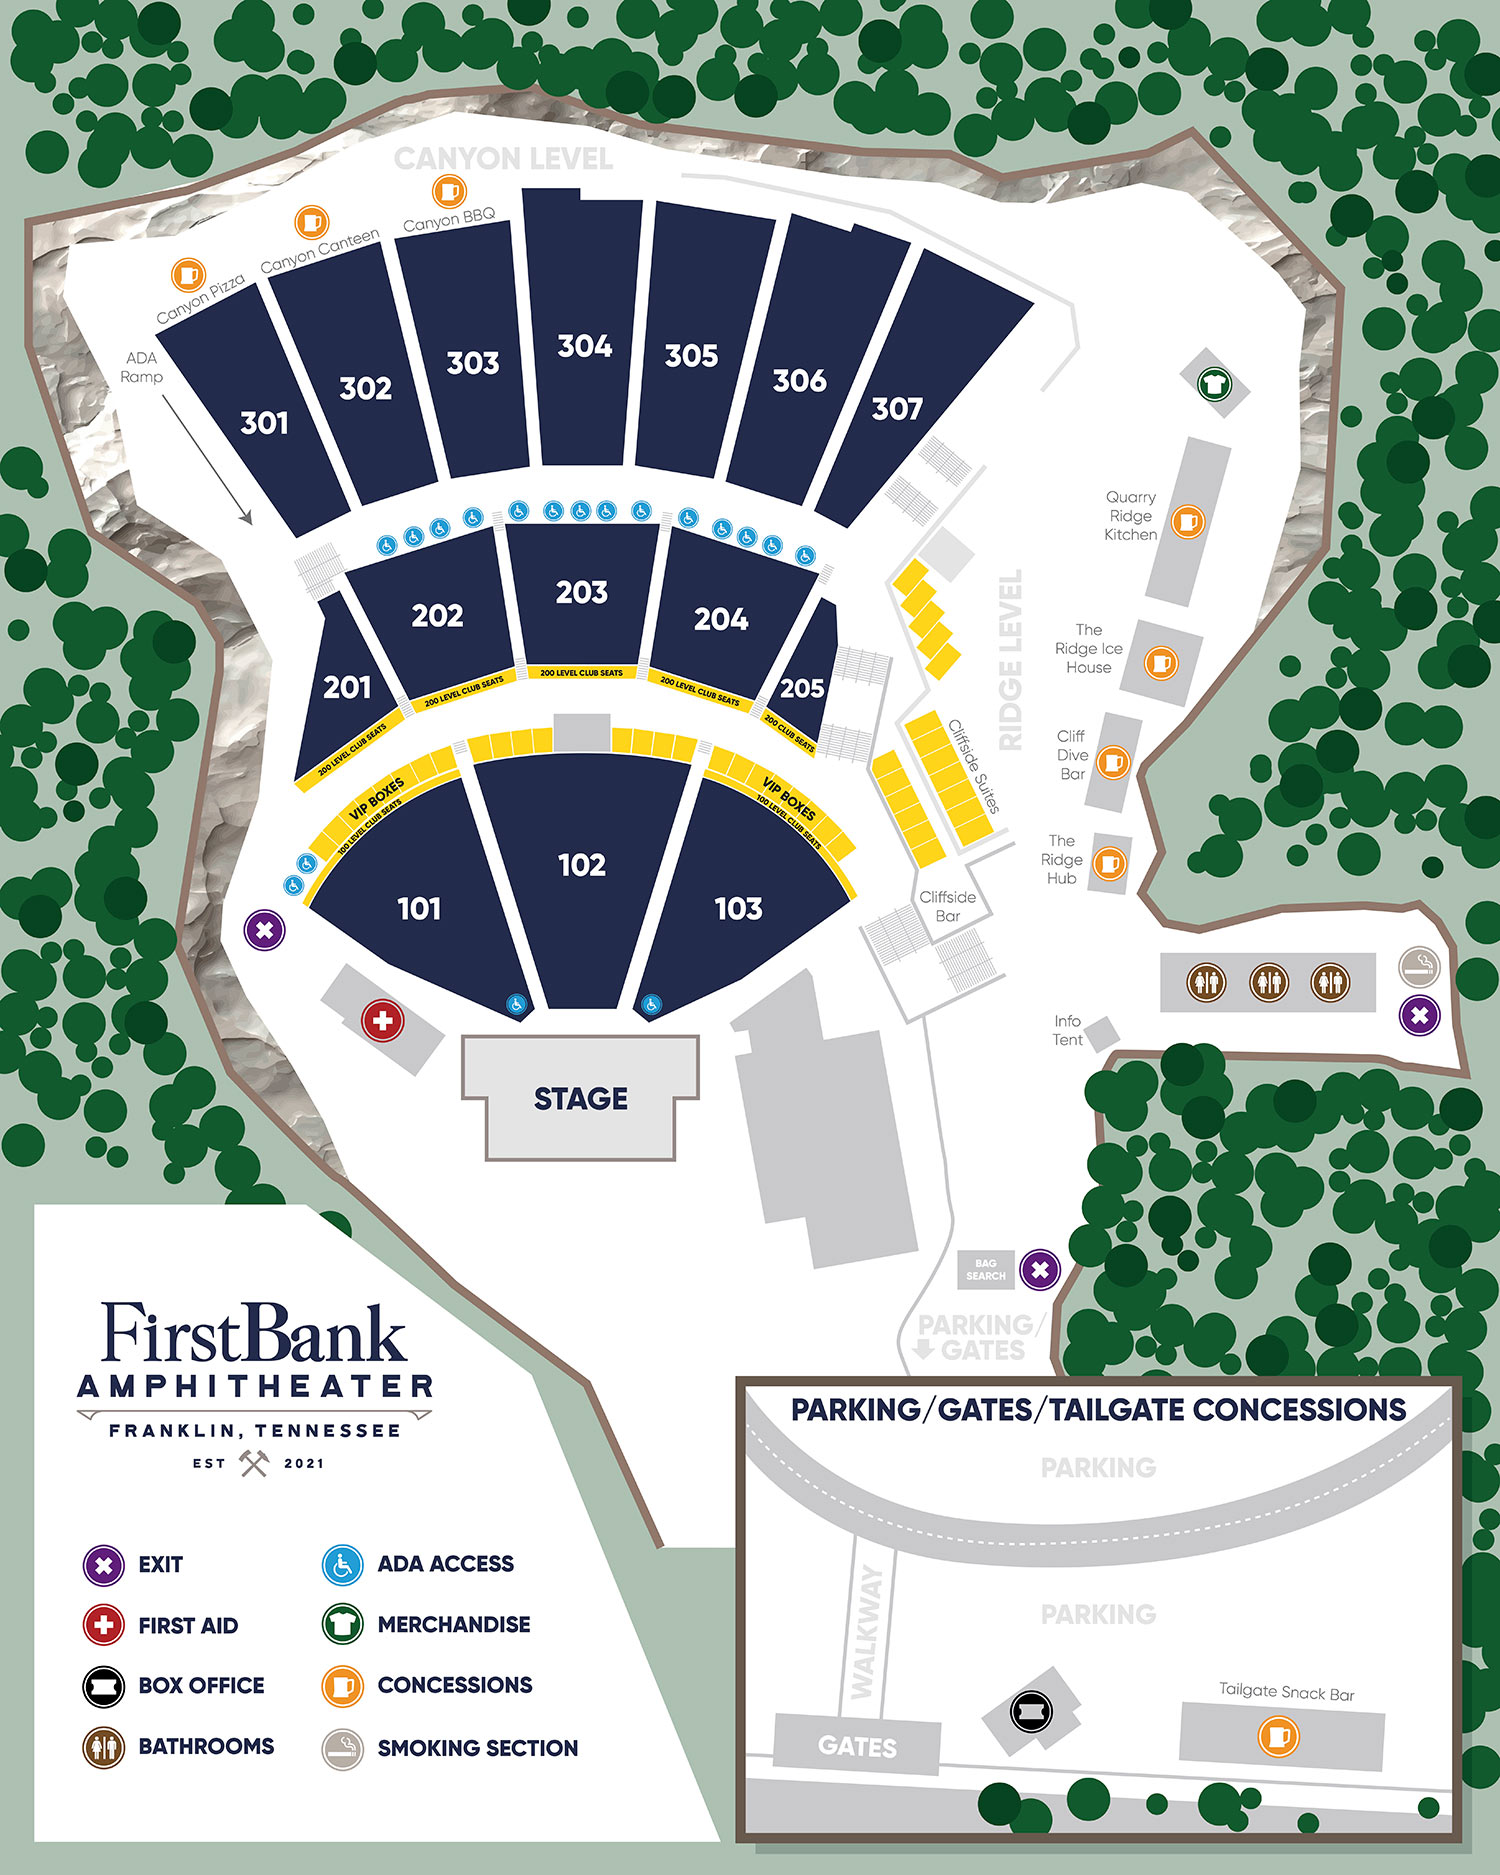 image of amphitheater seating map